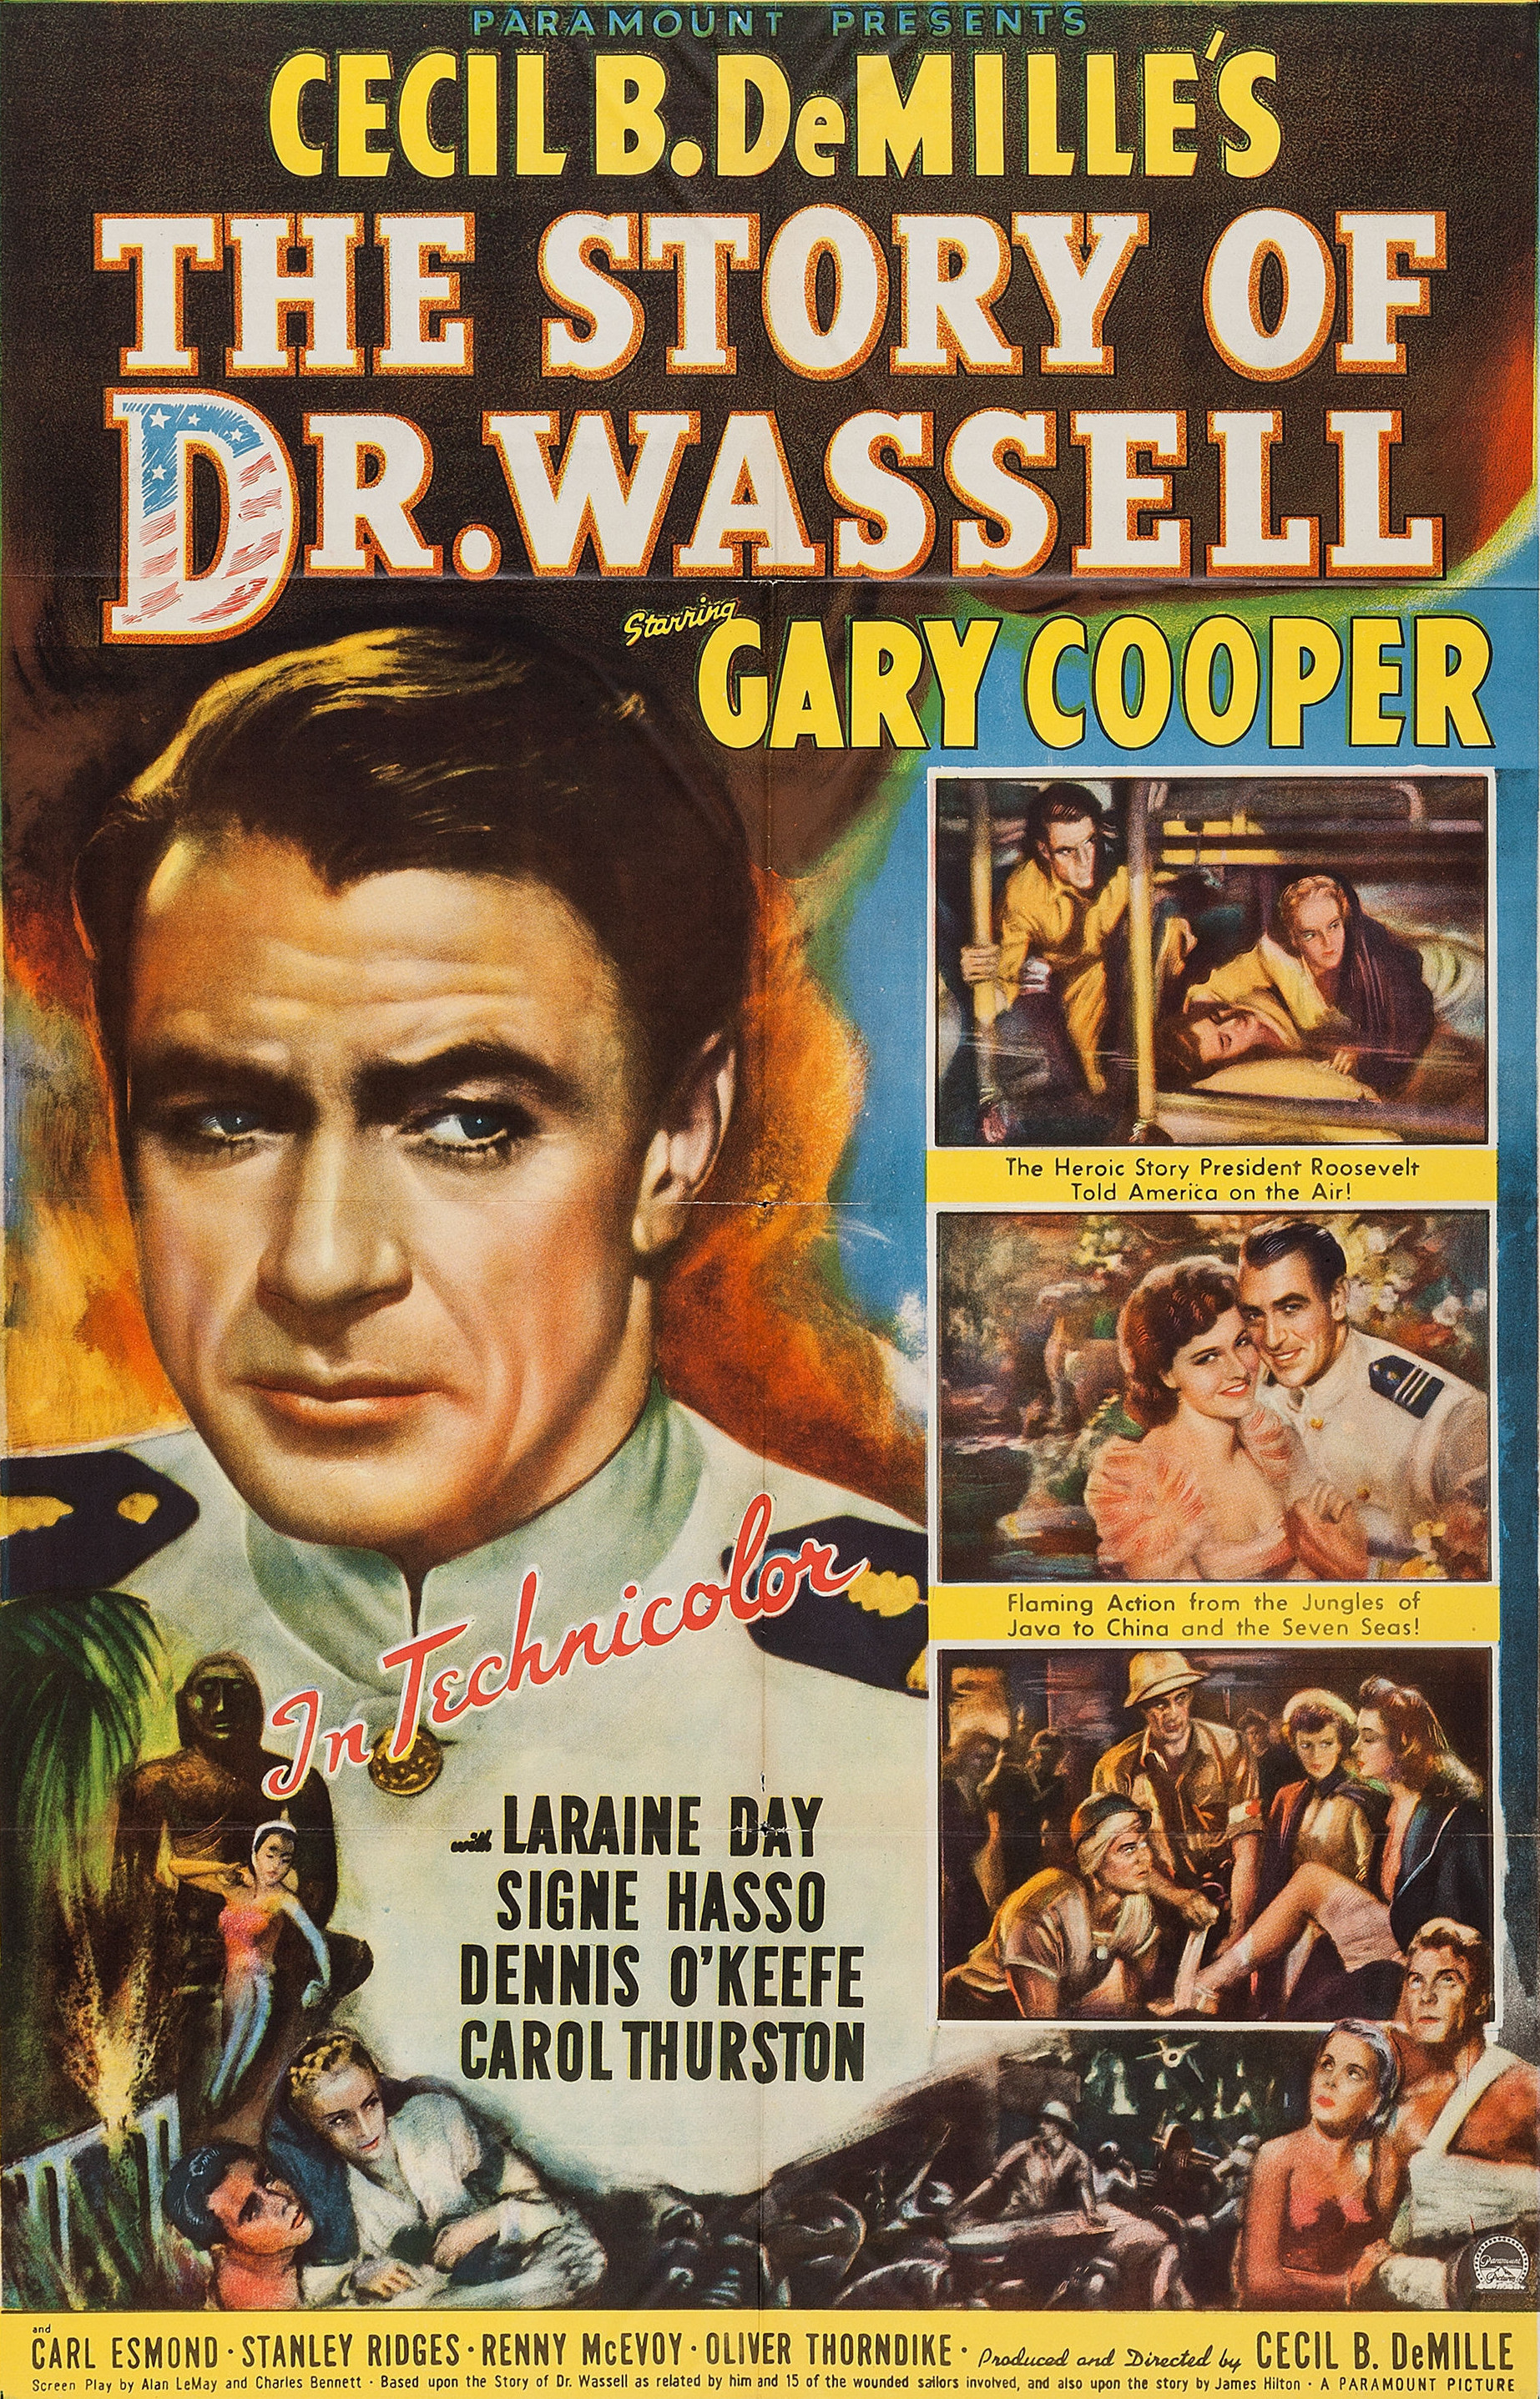 - As the Japanese sweep through the East Indies during World War II, Dr. Wassell is determined to escape from Java with some crewmen of the cruiser Marblehead. Based on a true story of how Dr. Wassell saved a dozen or so wounded sailors who were left behind when able bodied men were evacuated to Australia.19442 h 20 min